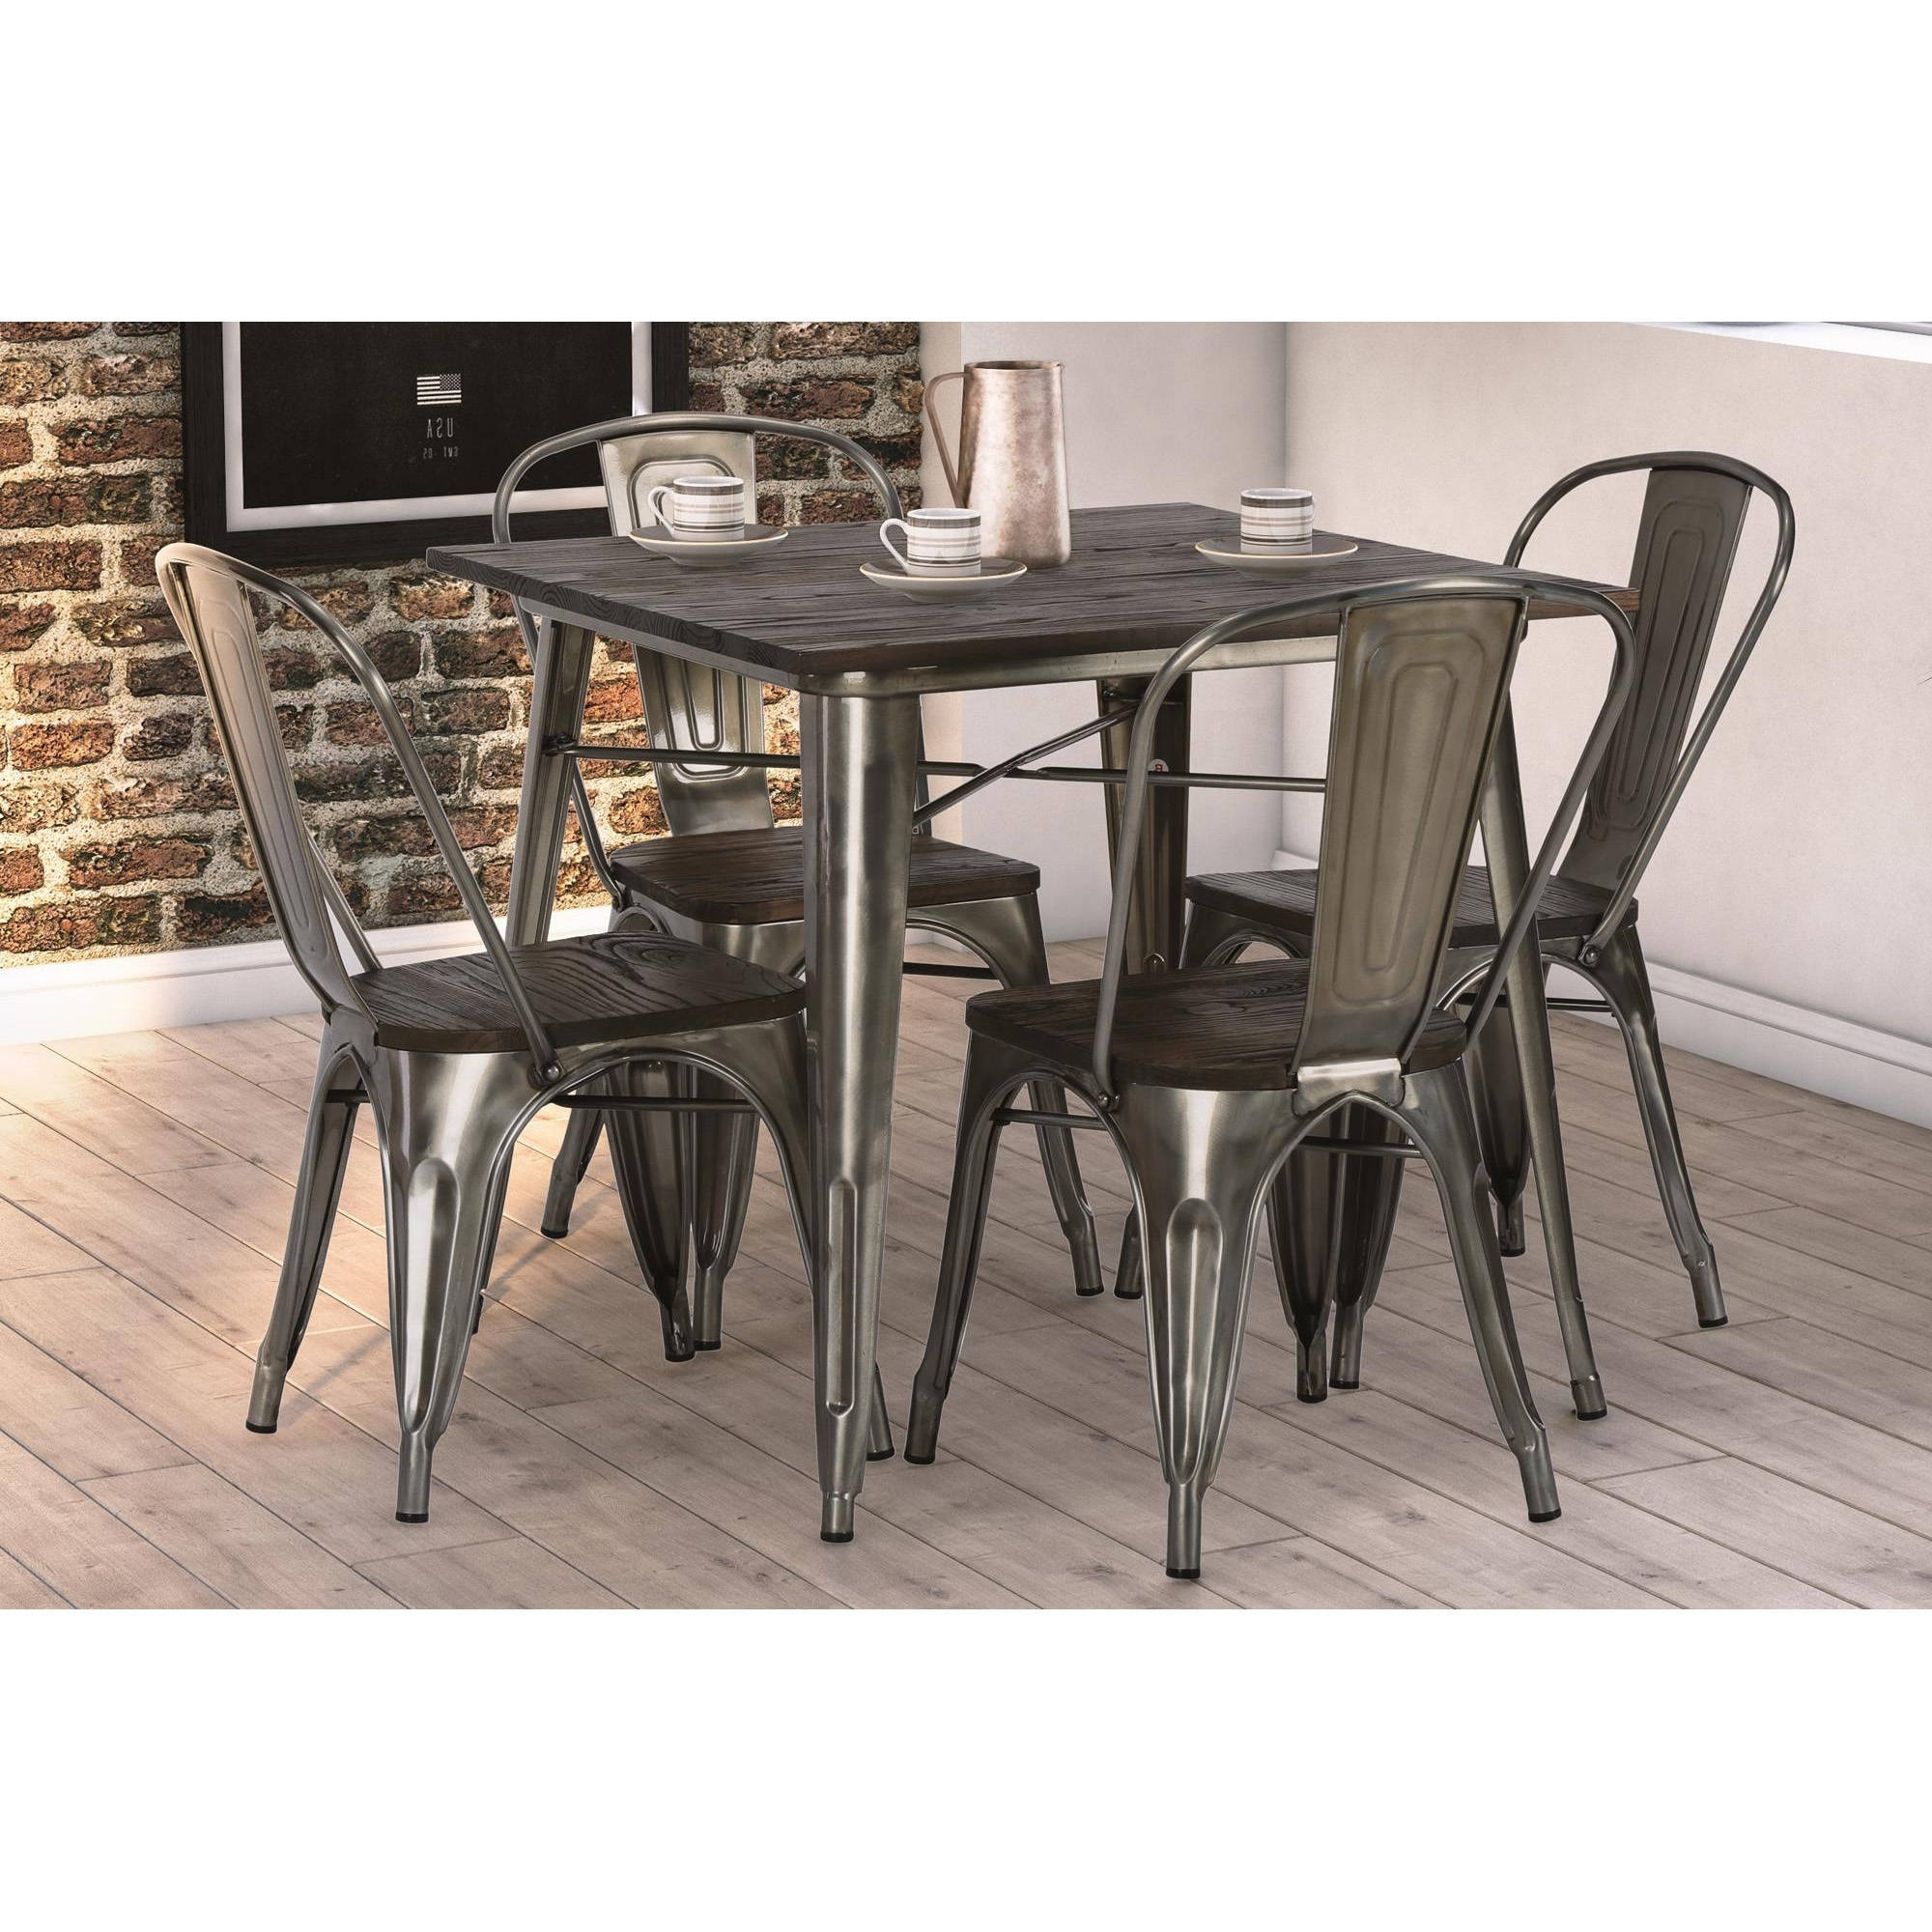 Iron And Wood Dining Tables Intended For Fashionable Dhp Fusion Dining Table, Square, Antique Gun Metal/wood – Walmart (View 8 of 25)